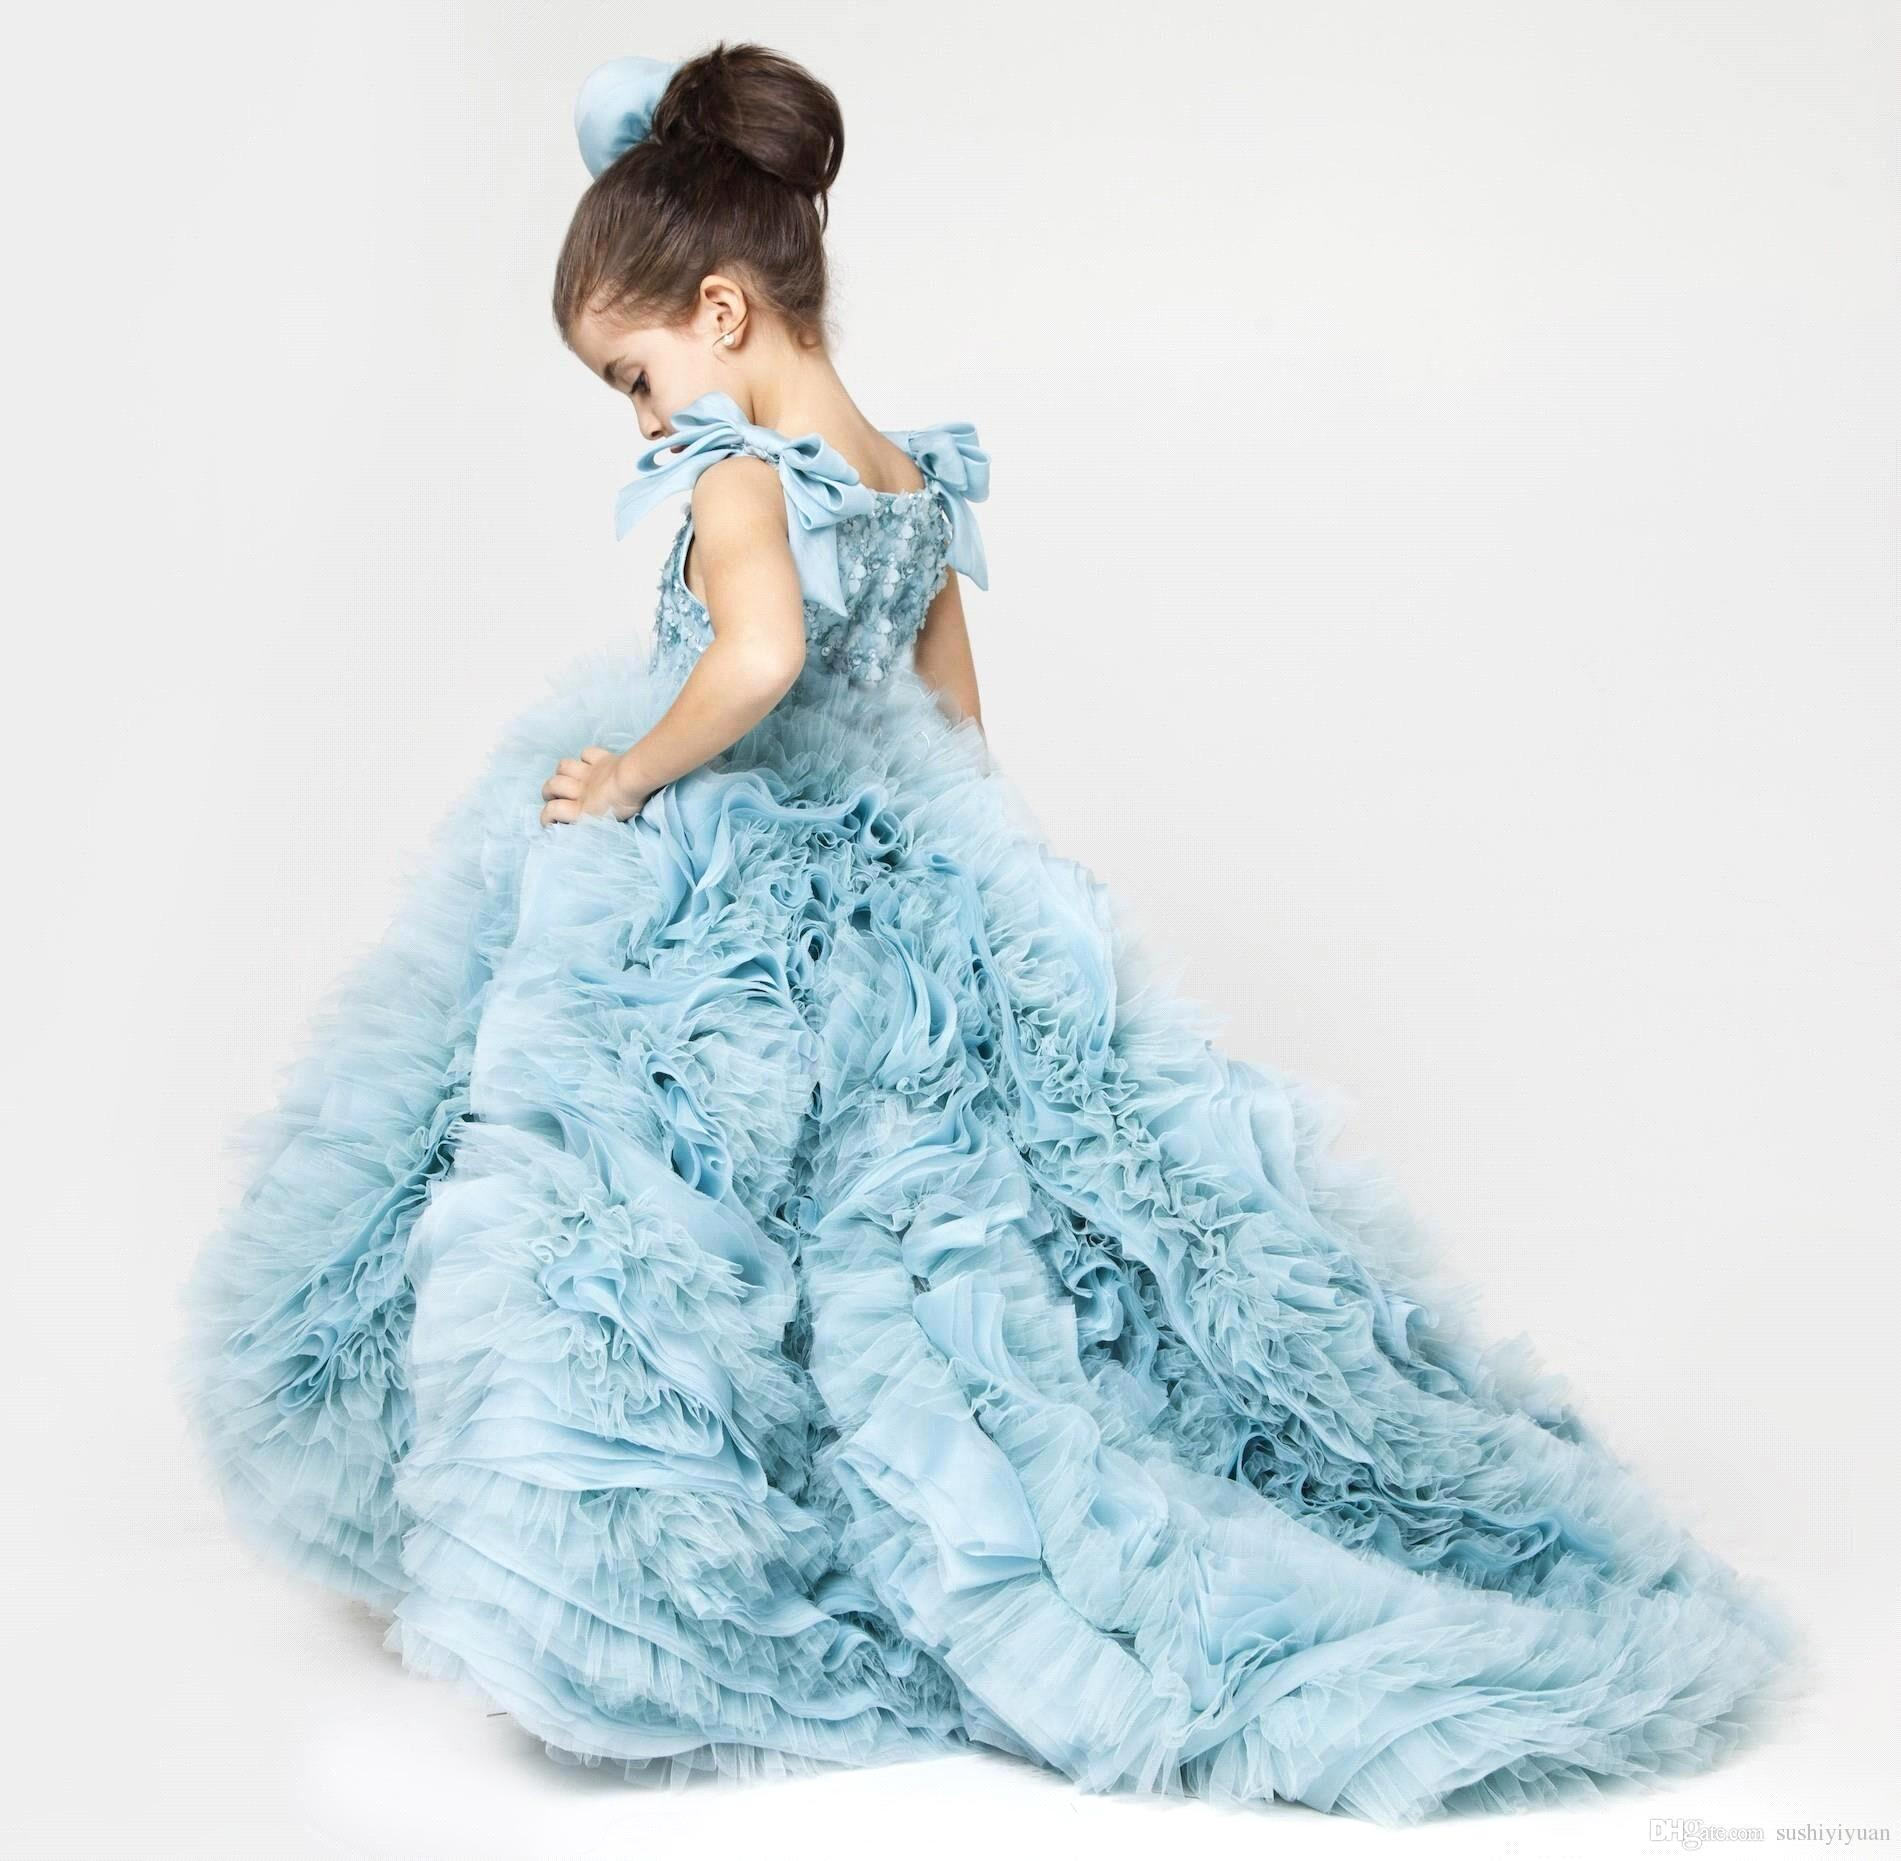 Evening Dresses for Toddlers | Dress images